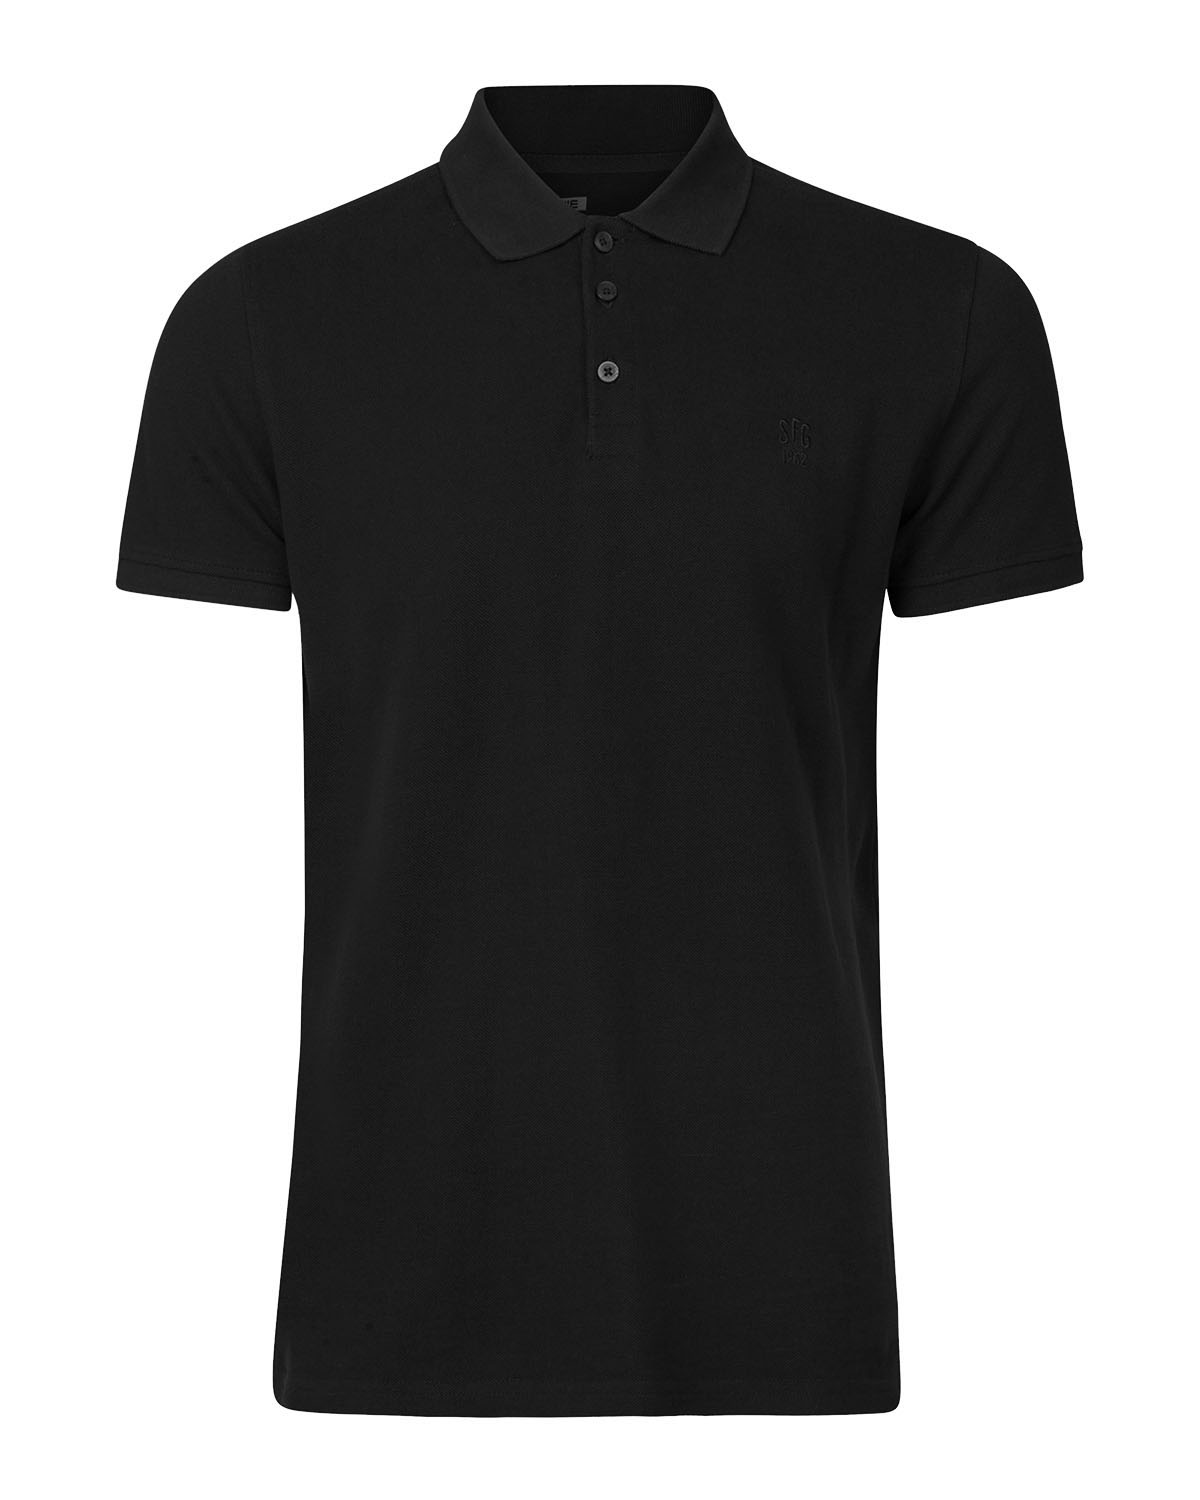 Herren Poloshirt Aus Bio Baumwolle 79194914 We Fashion Polo Shirt Schwarz